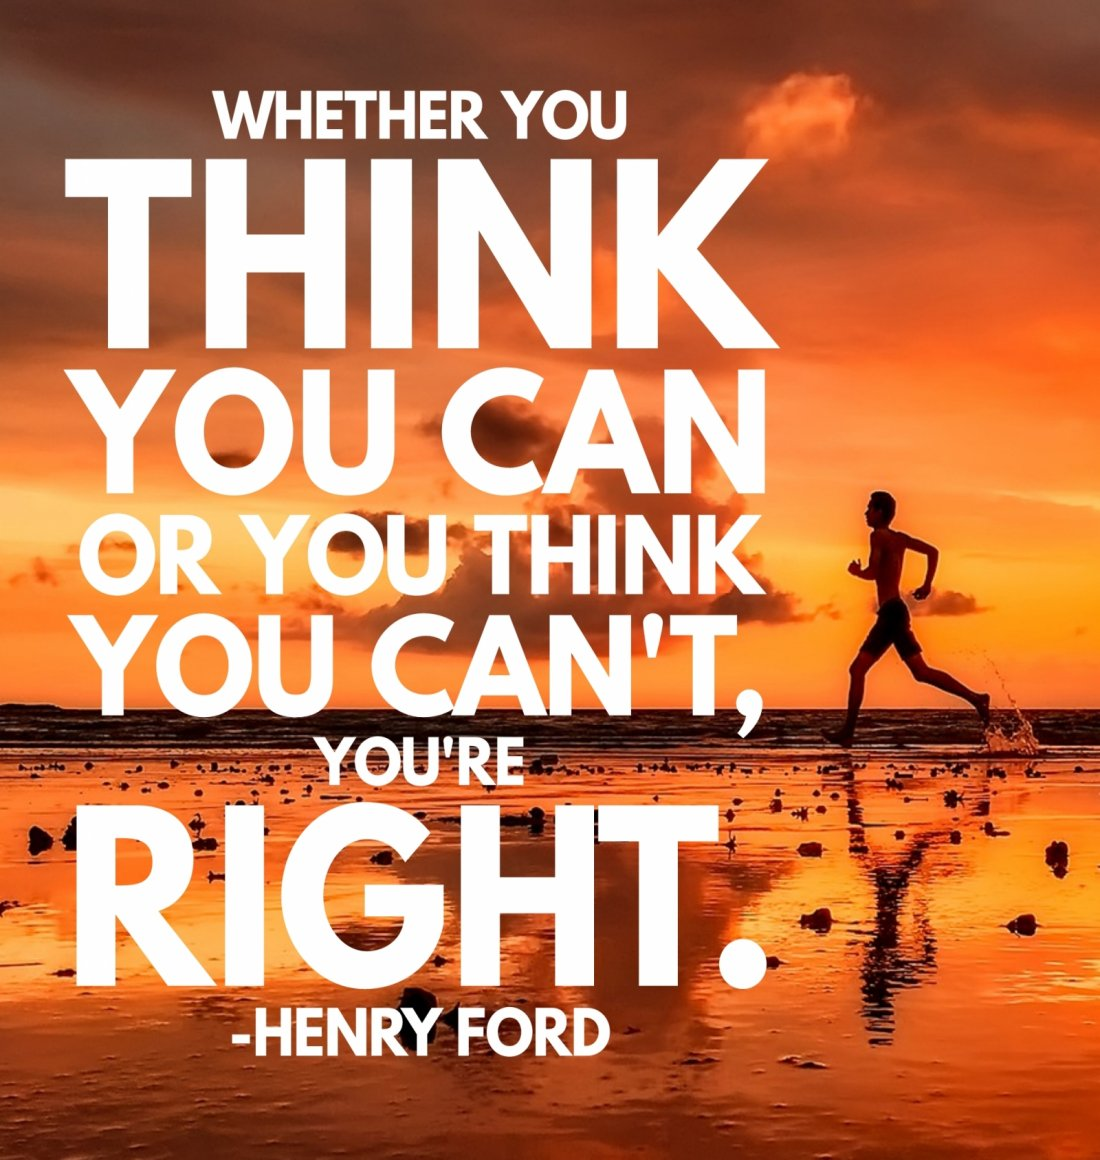 Whether you think you can or you think you can't, you're right. - Henry Ford